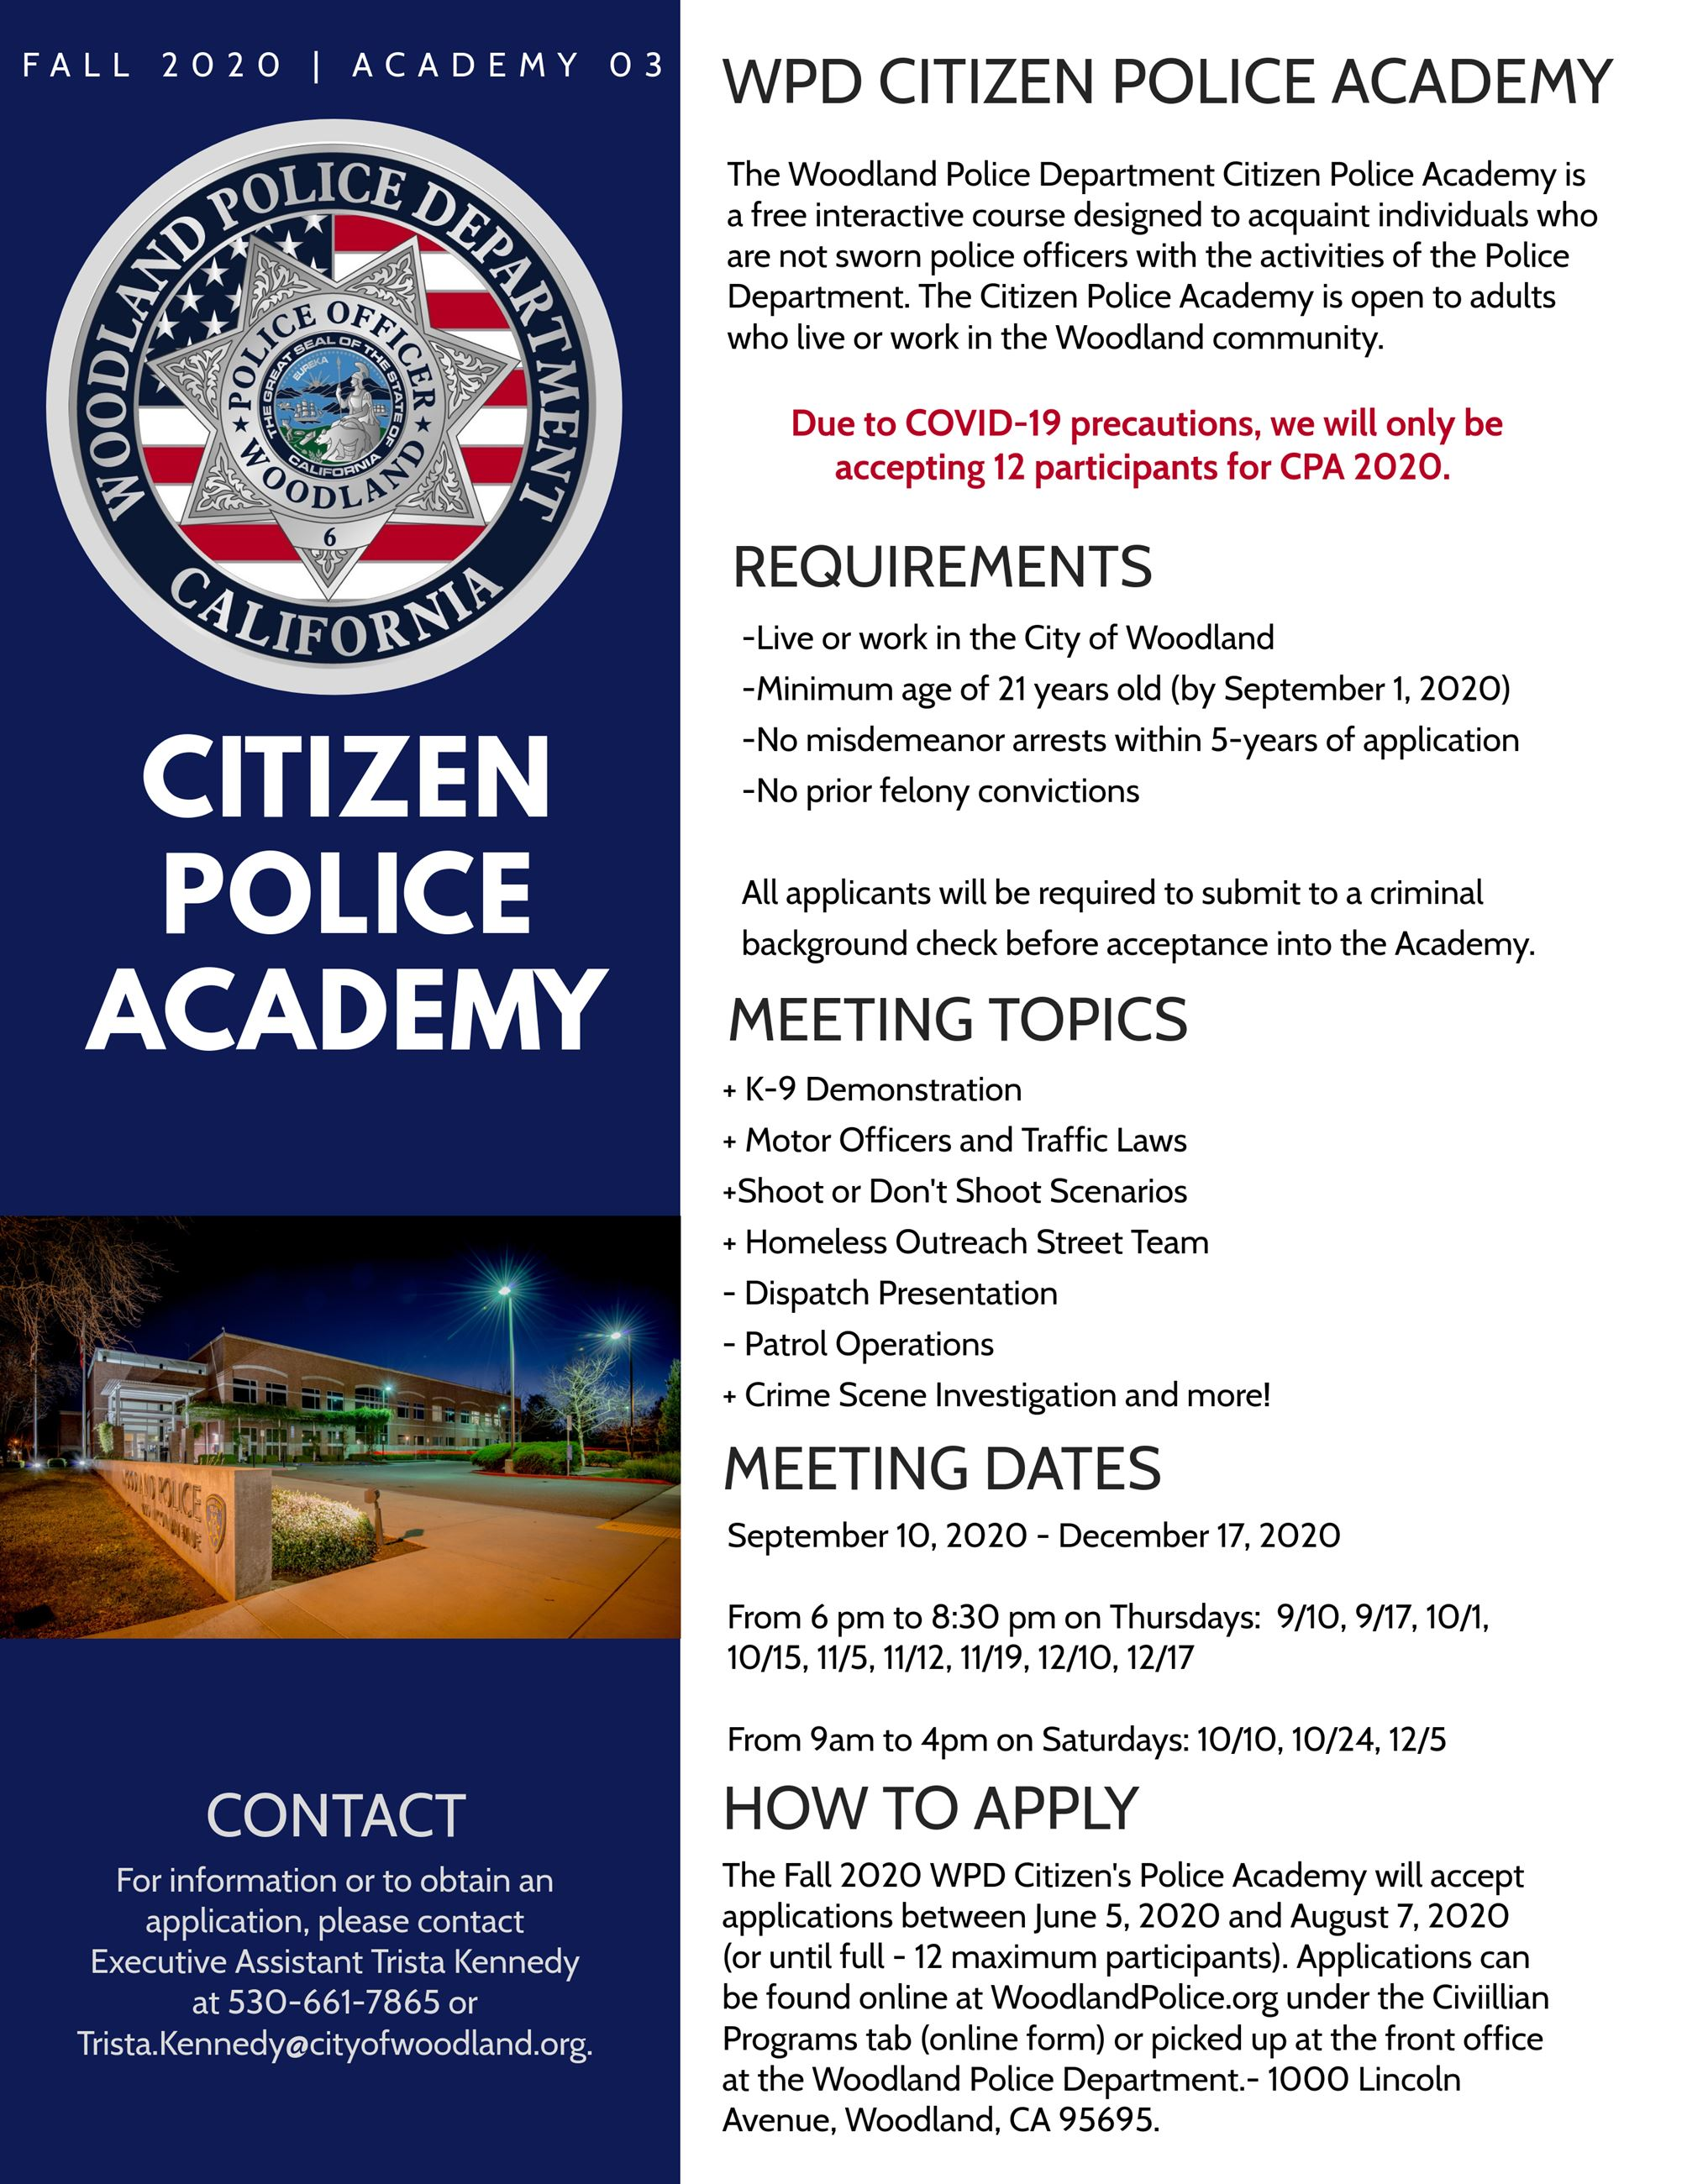 Citizens Police Academy 2020